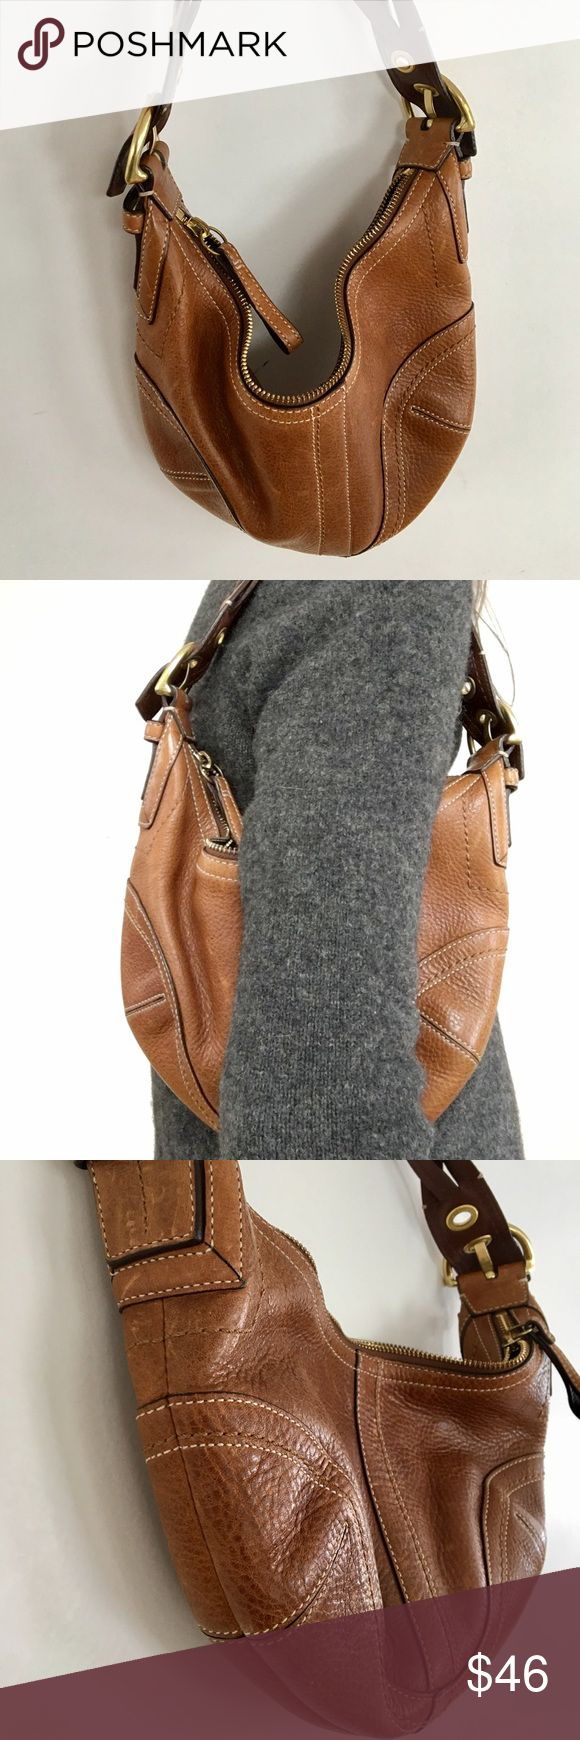 Coach soho leather purse Braided leather strap, zip hobo pebbled leather purse in light brown. Leather has beautiful feel to it and is in very good condition, minor scuffs, pictured. Style no. E06S-10042. Coach Bags Satchels